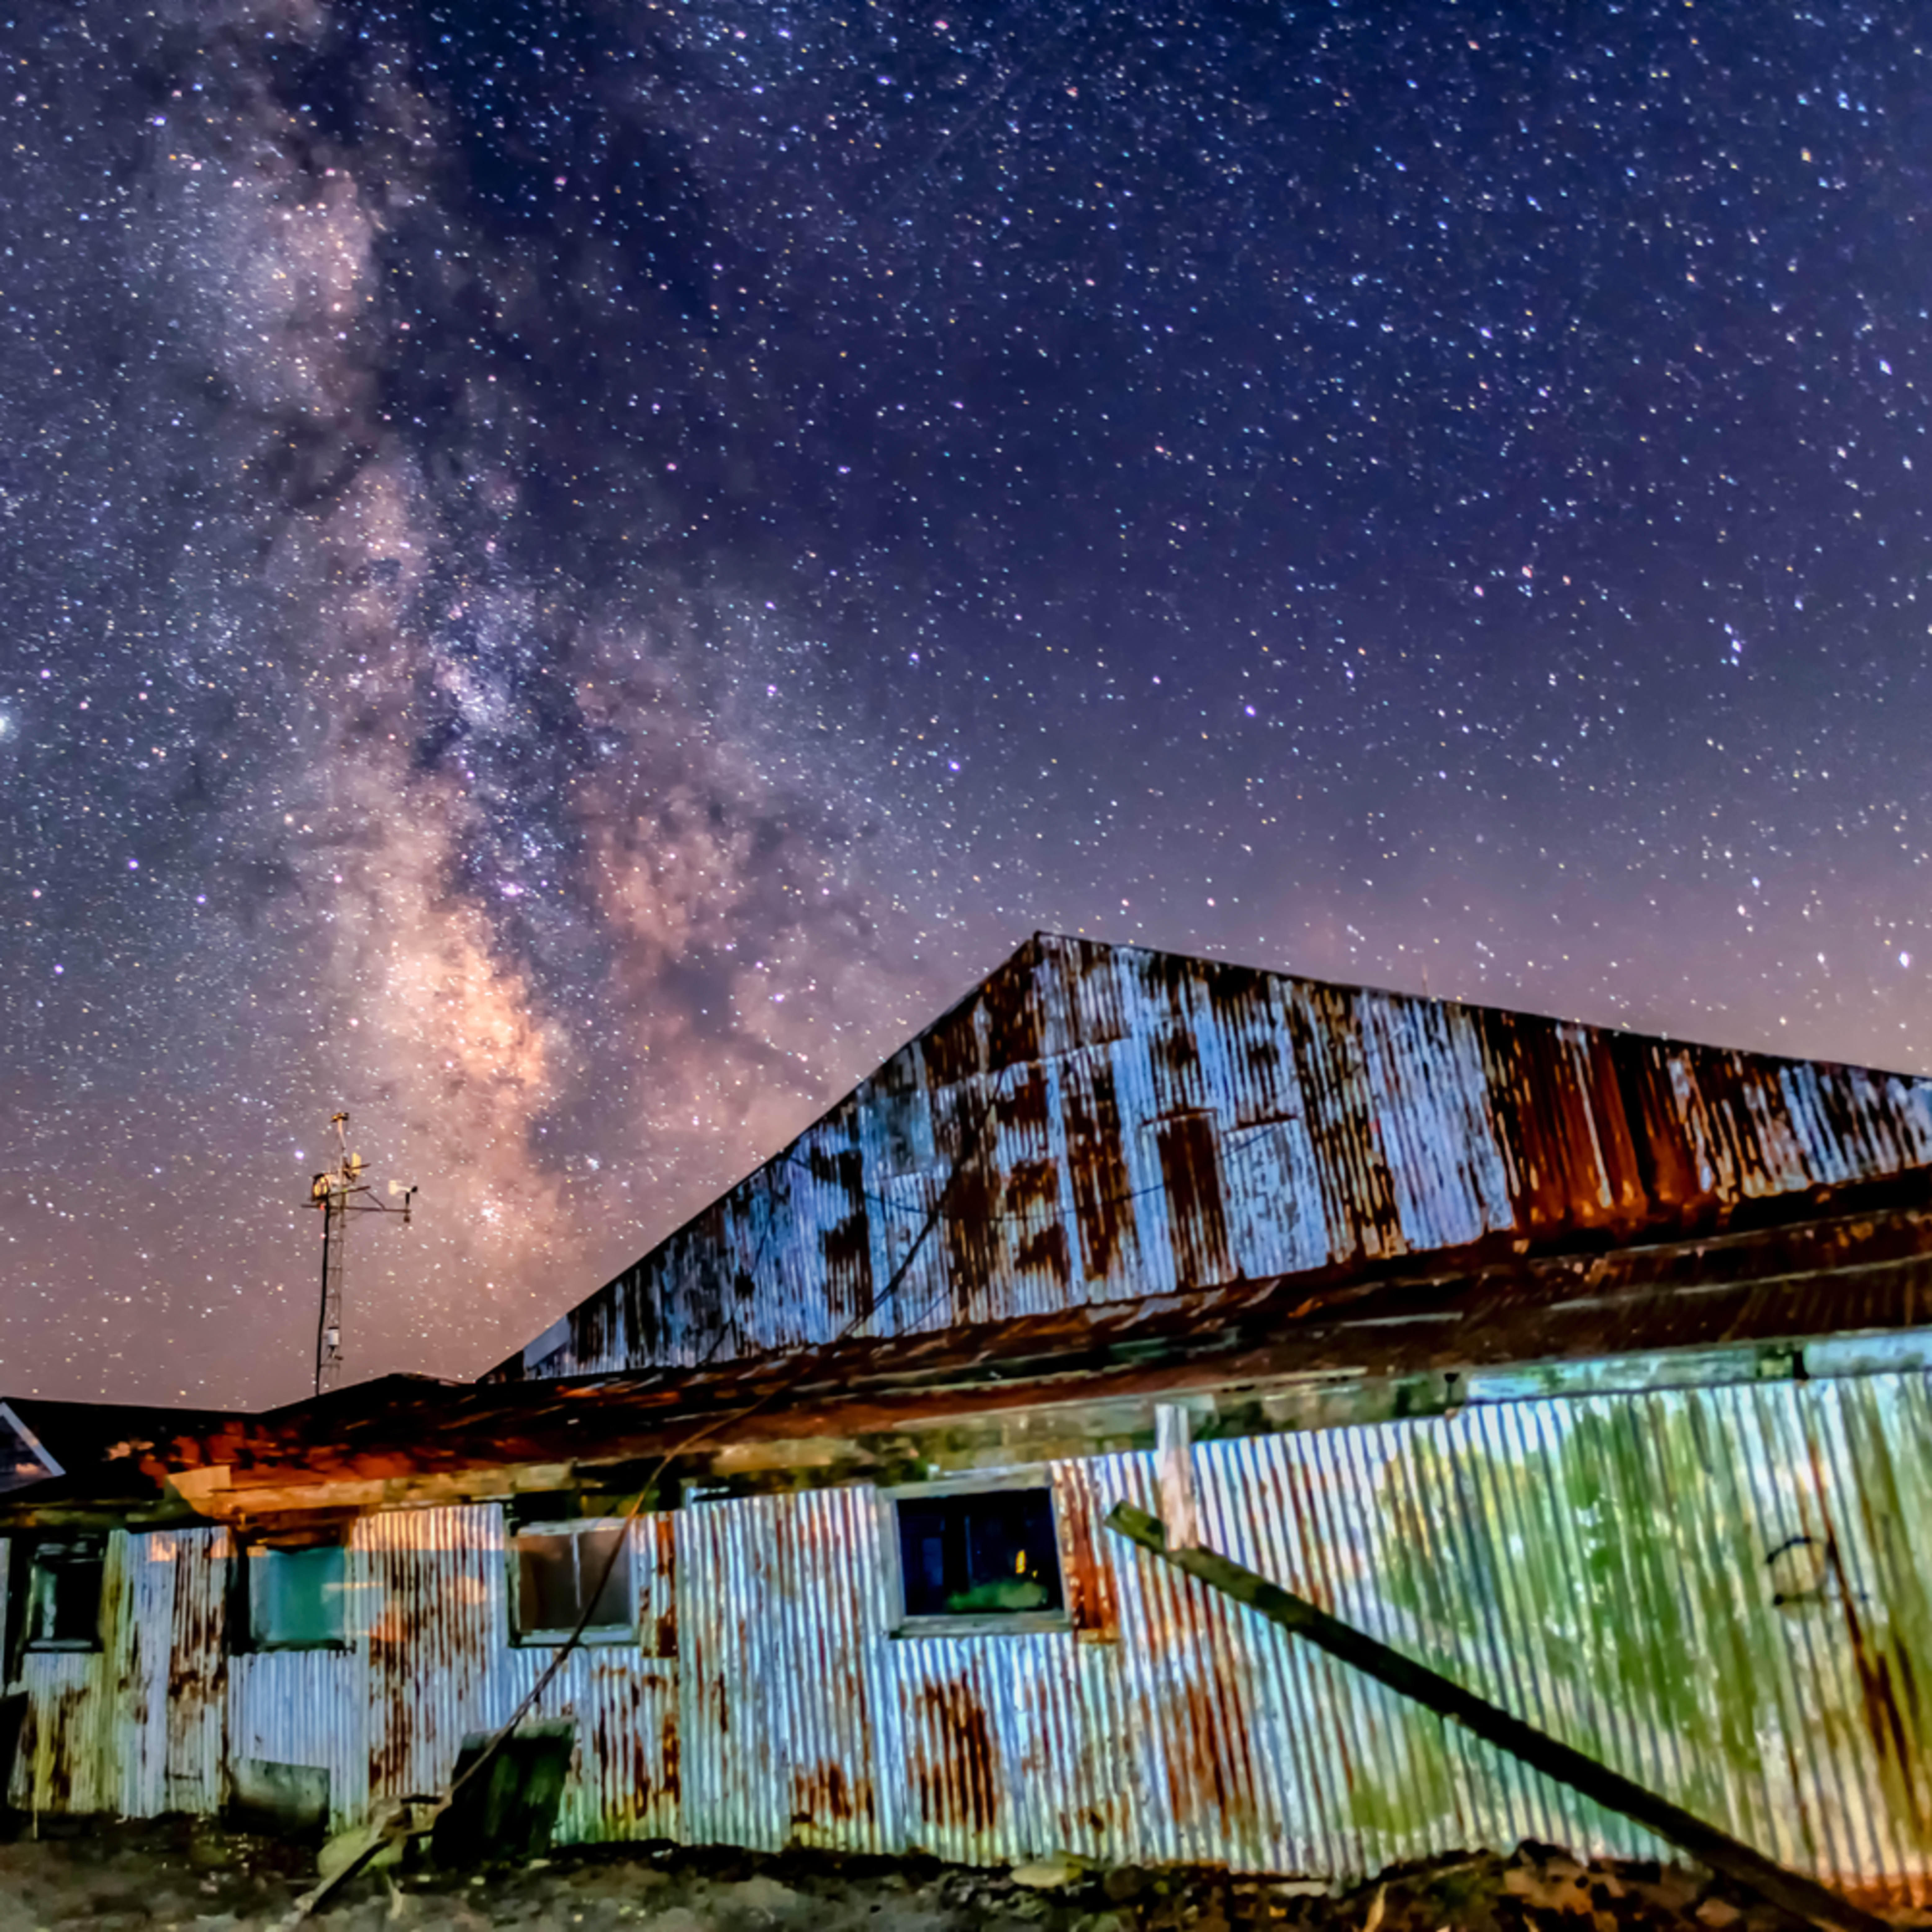 Katam airfield hangar milky way isycxp